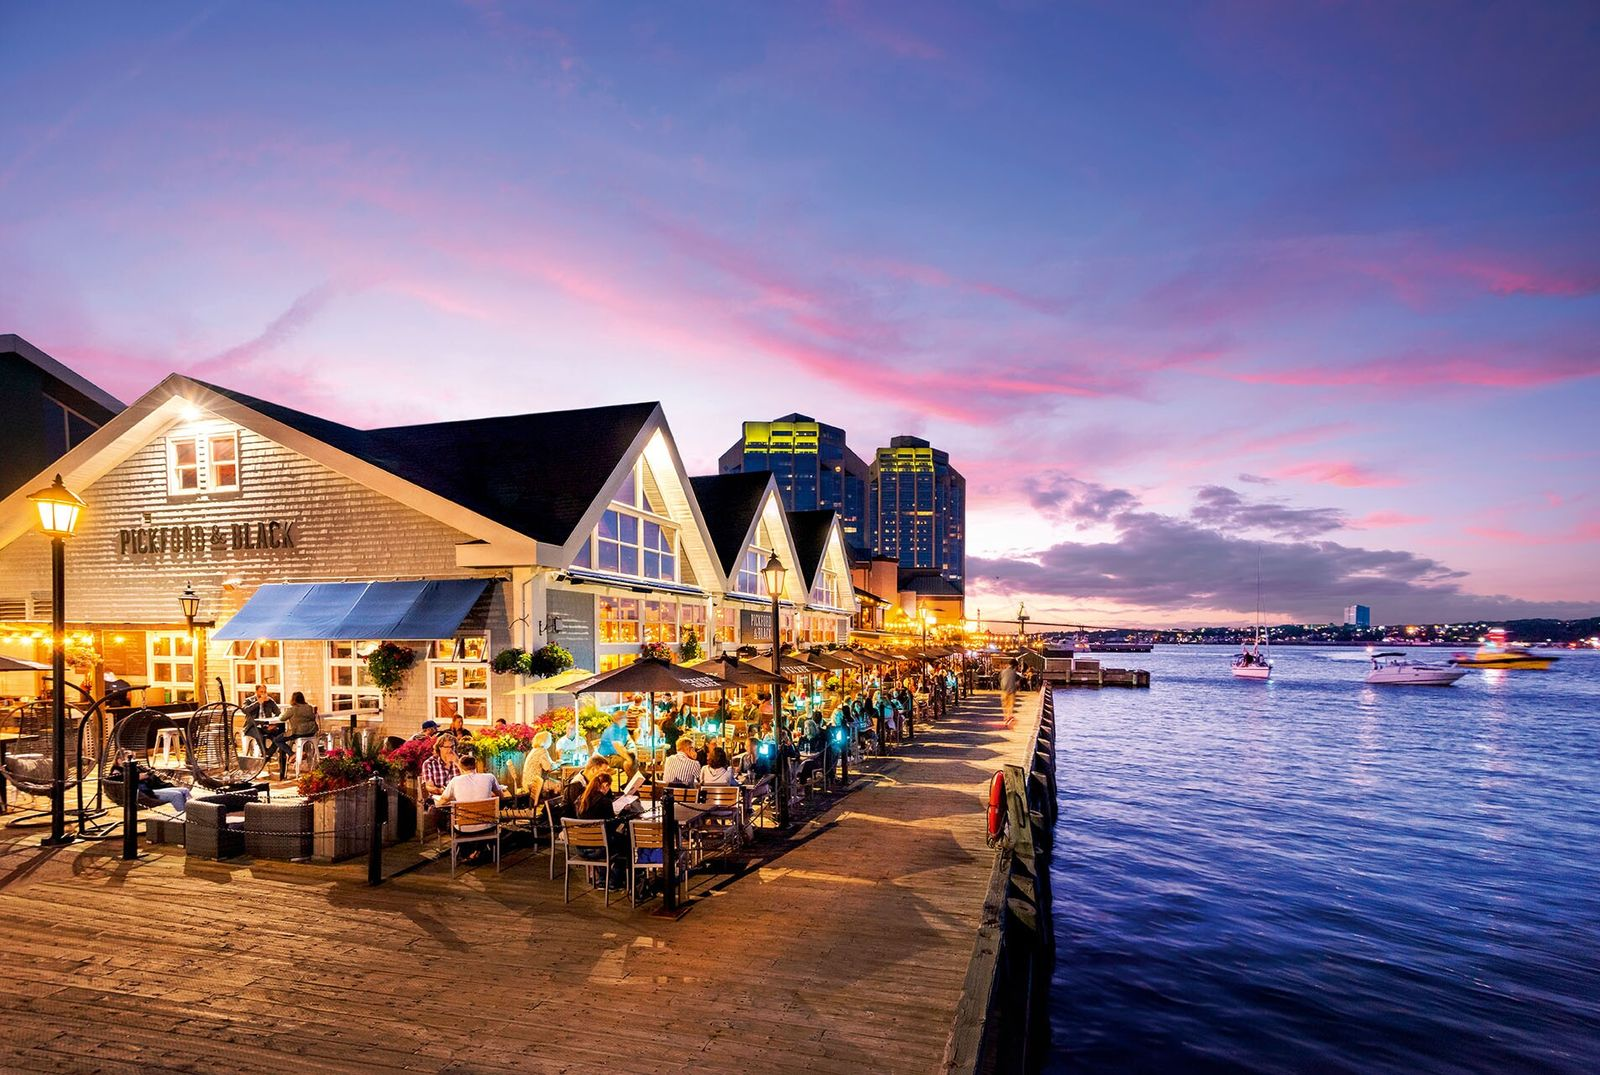 Halifax, the capital of Nova Scotia, draws heavily on its maritime heritage, and the waterfront district ...